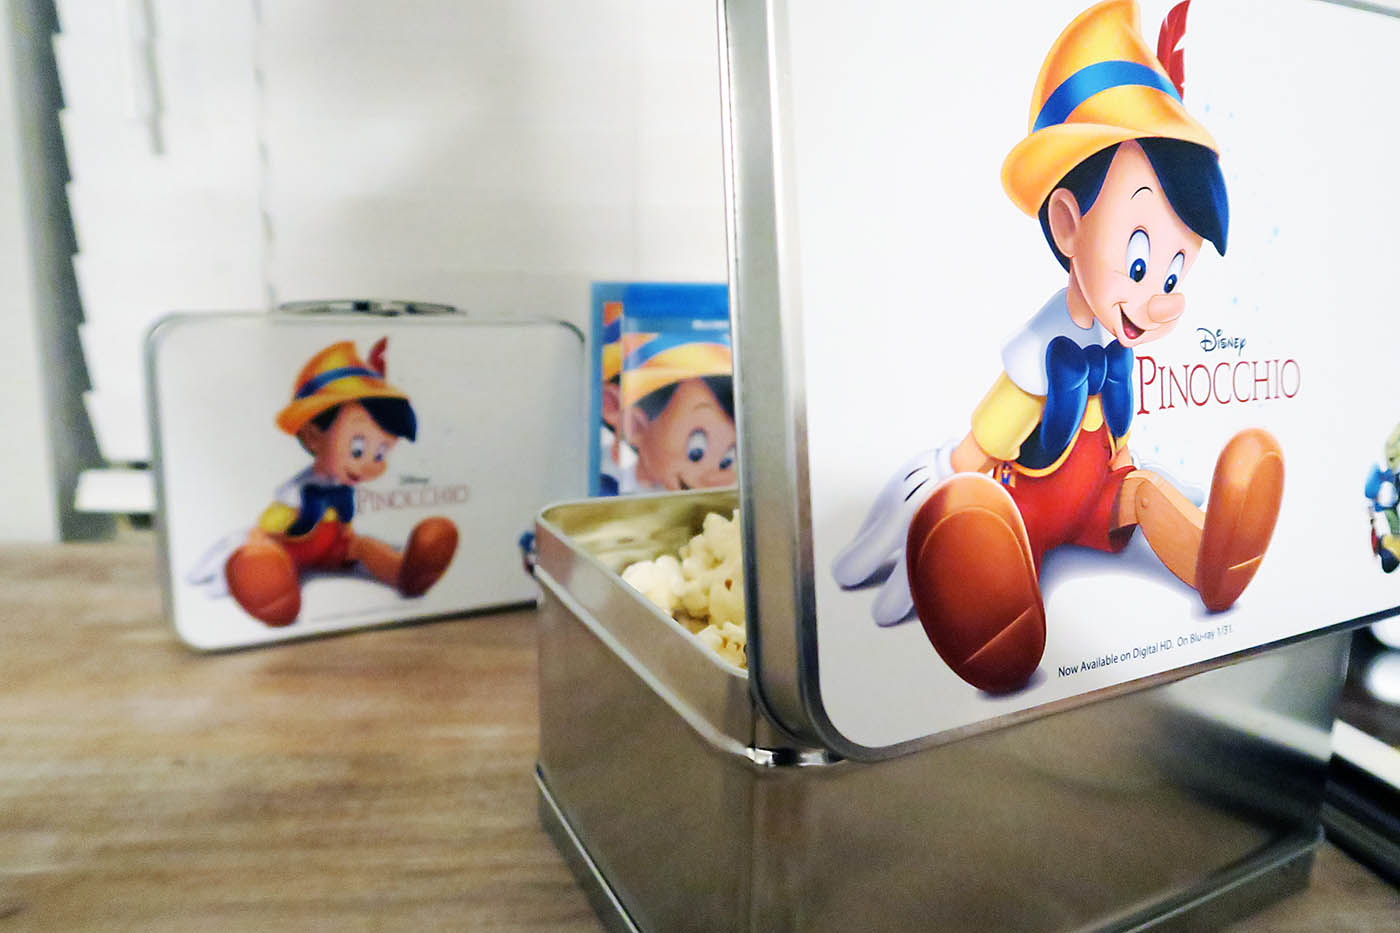 Pinocchio movie night ideas